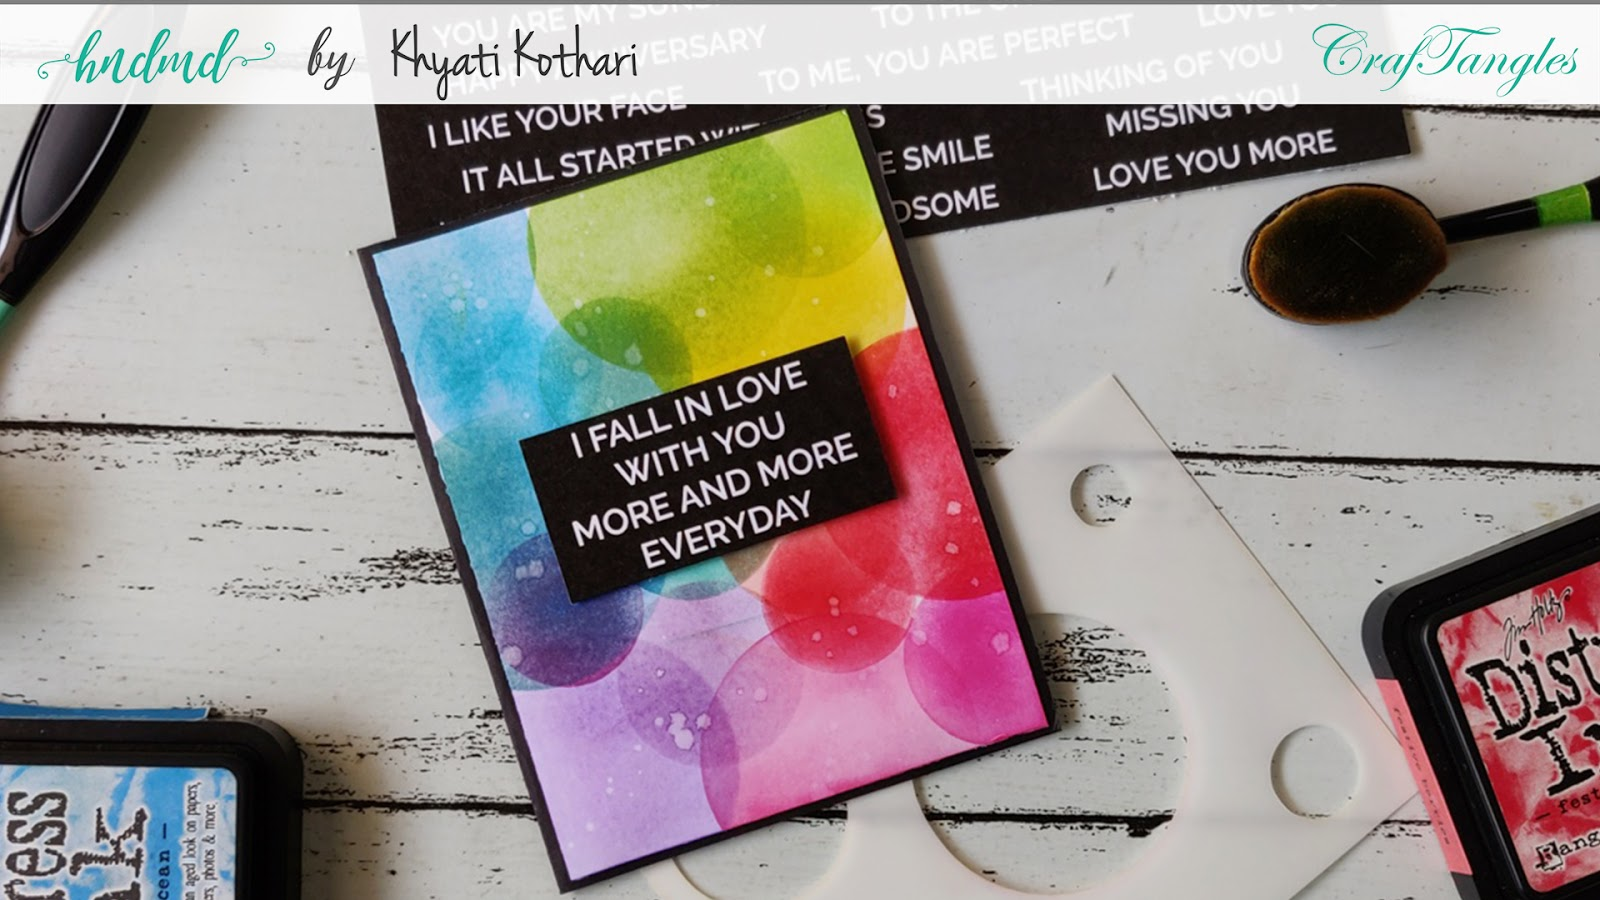 Rainbow Bokeh Card using CrafTangles masking Stencil technique video - Cardmaking technique 3